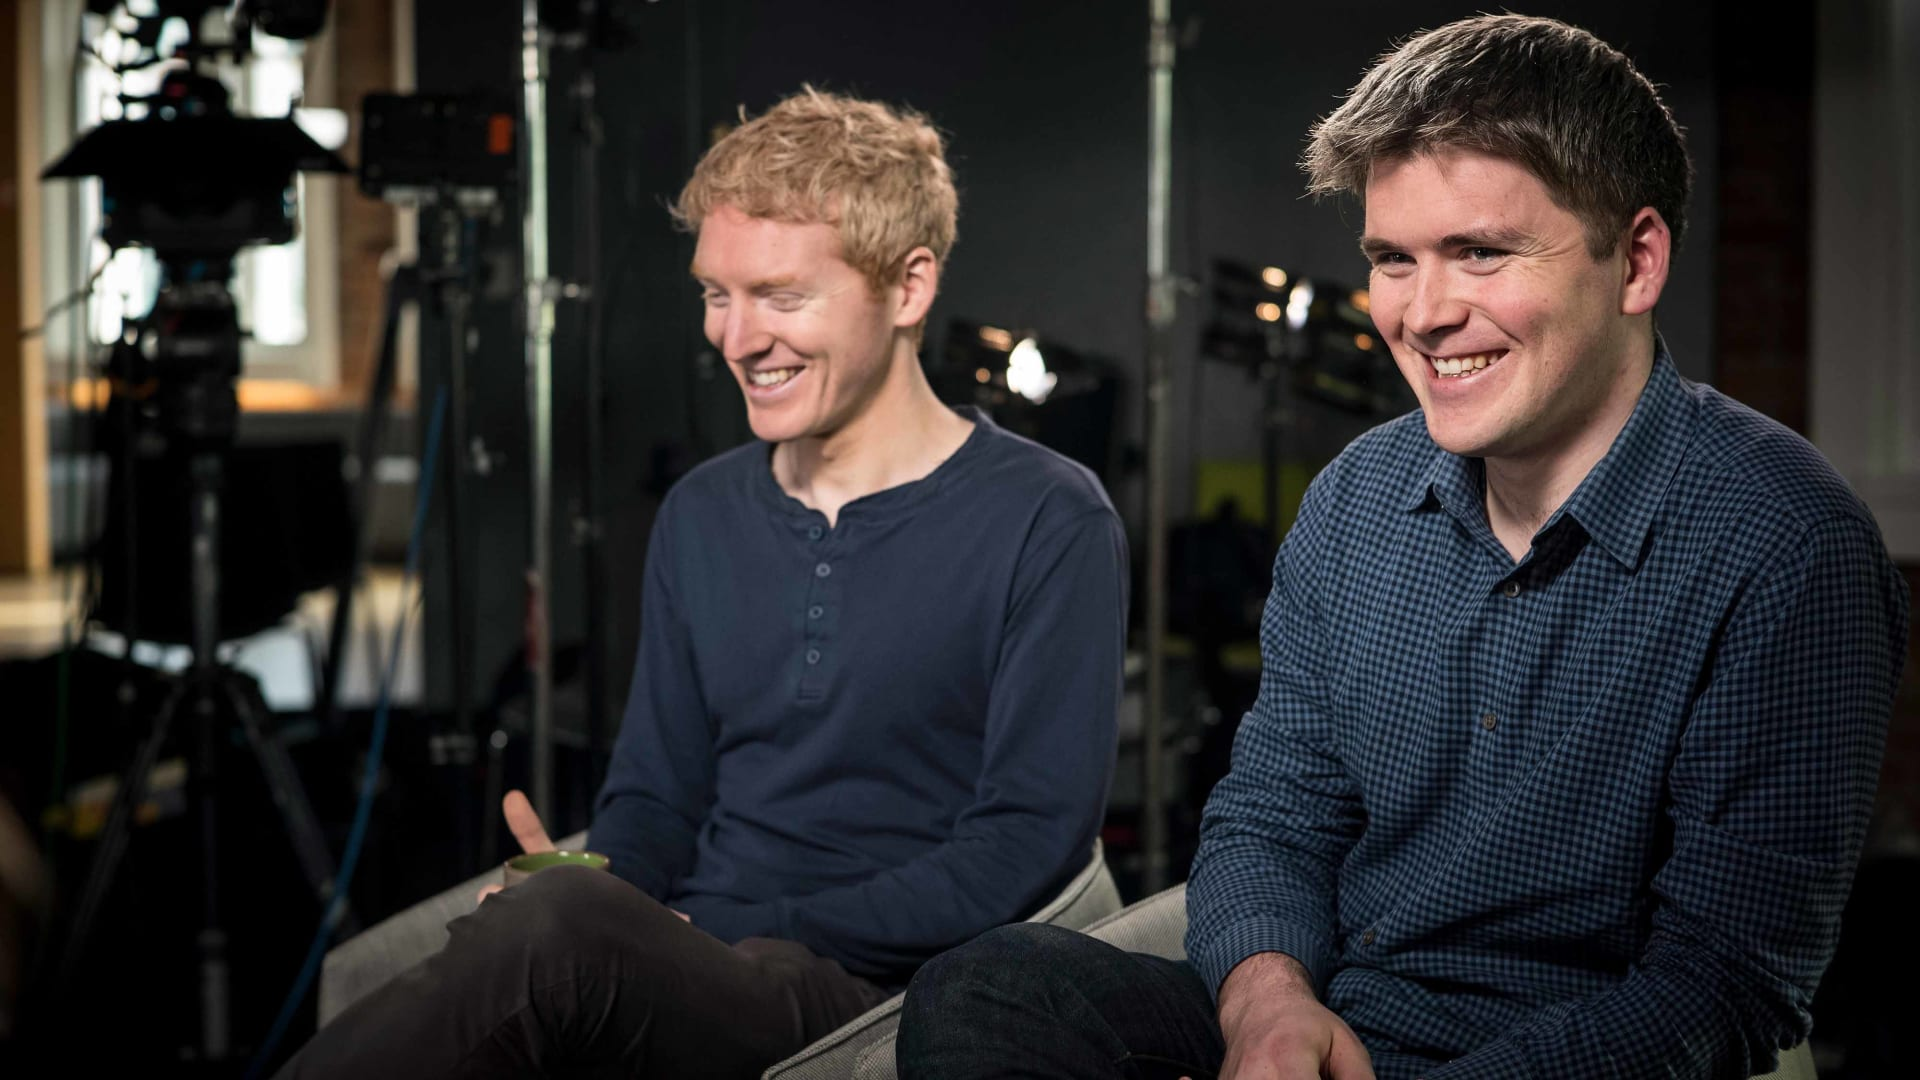 Patrick Collison, left, chief executive officer and co-founder, and John Collison, president and co-founder of Stripe.